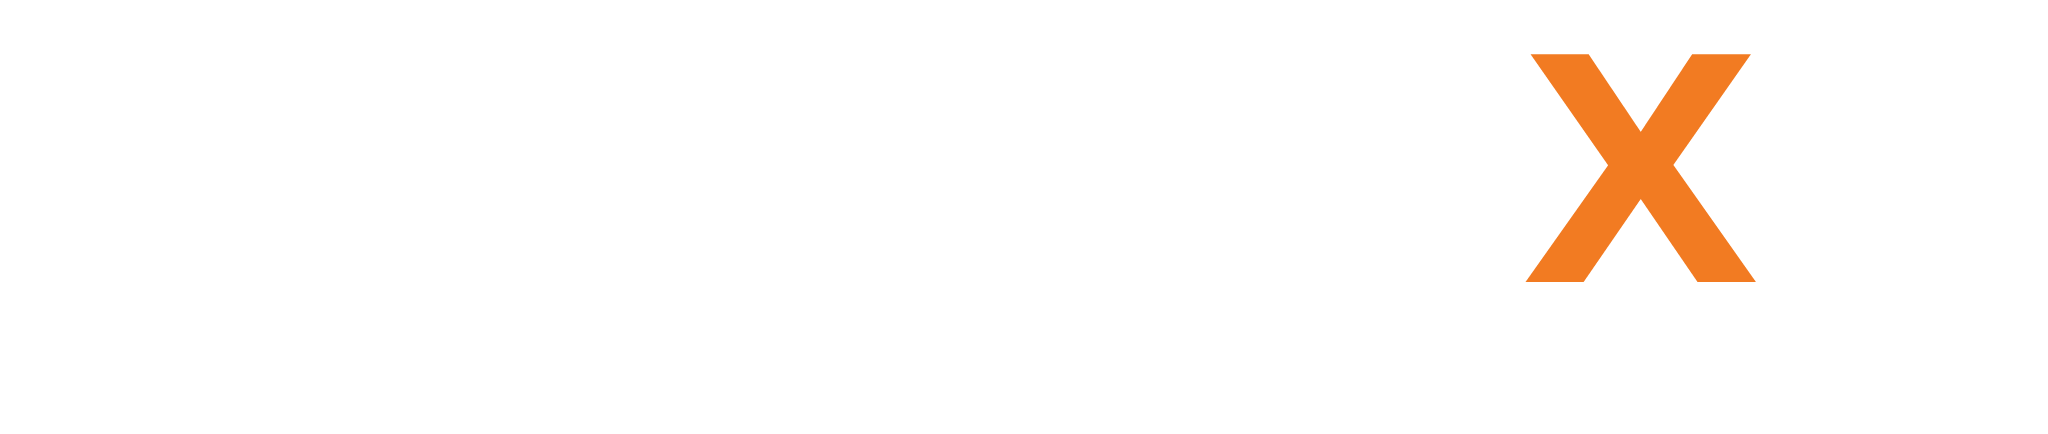 2018-HOGC-Exp-Logo-Trad-Chinese.png